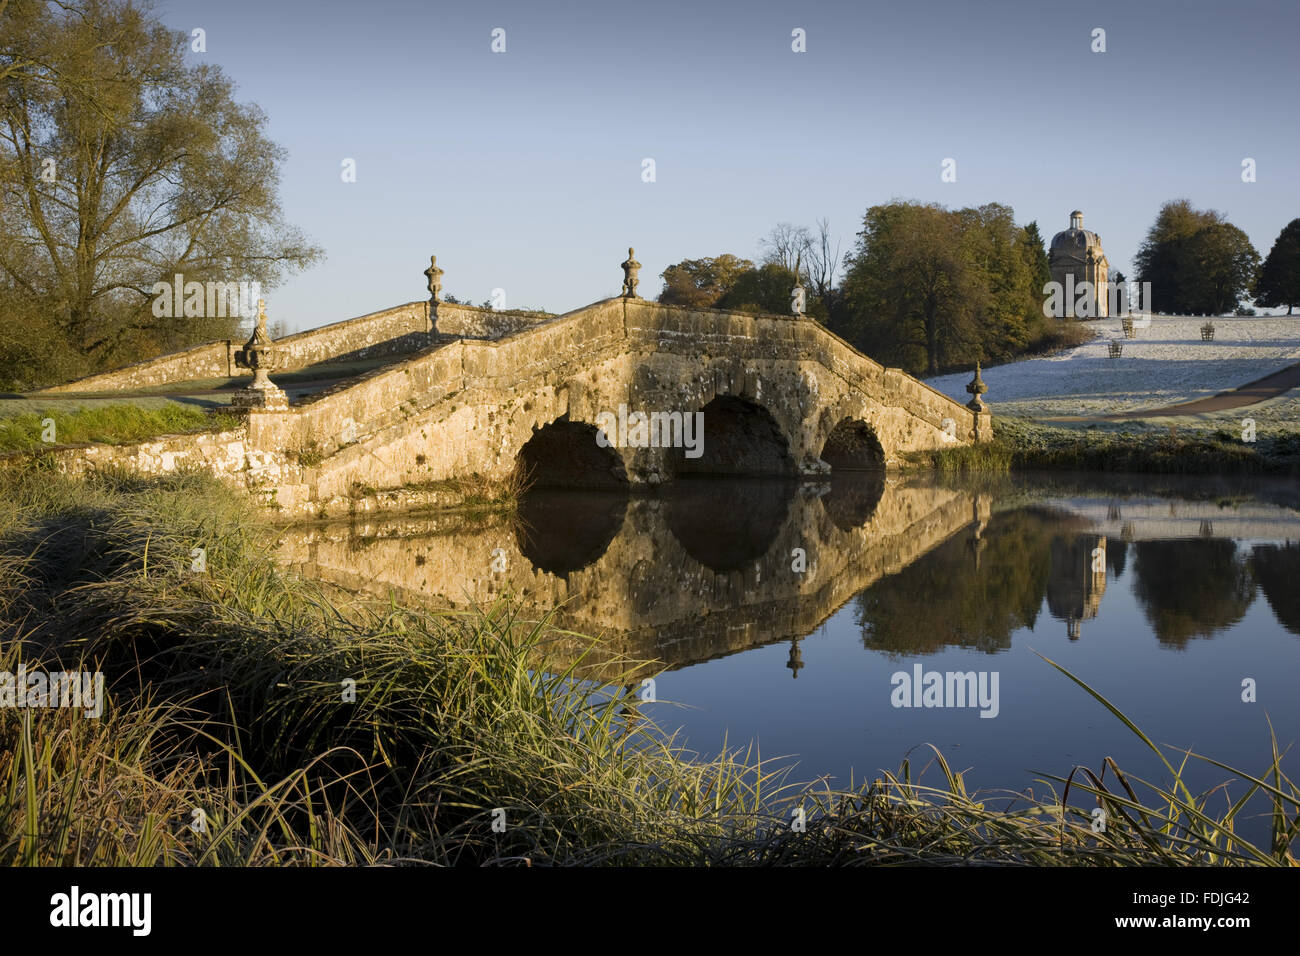 The Oxford Bridge on a frosty day at Stowe Landscape Gardens, Buckinghamshire. Stock Photo